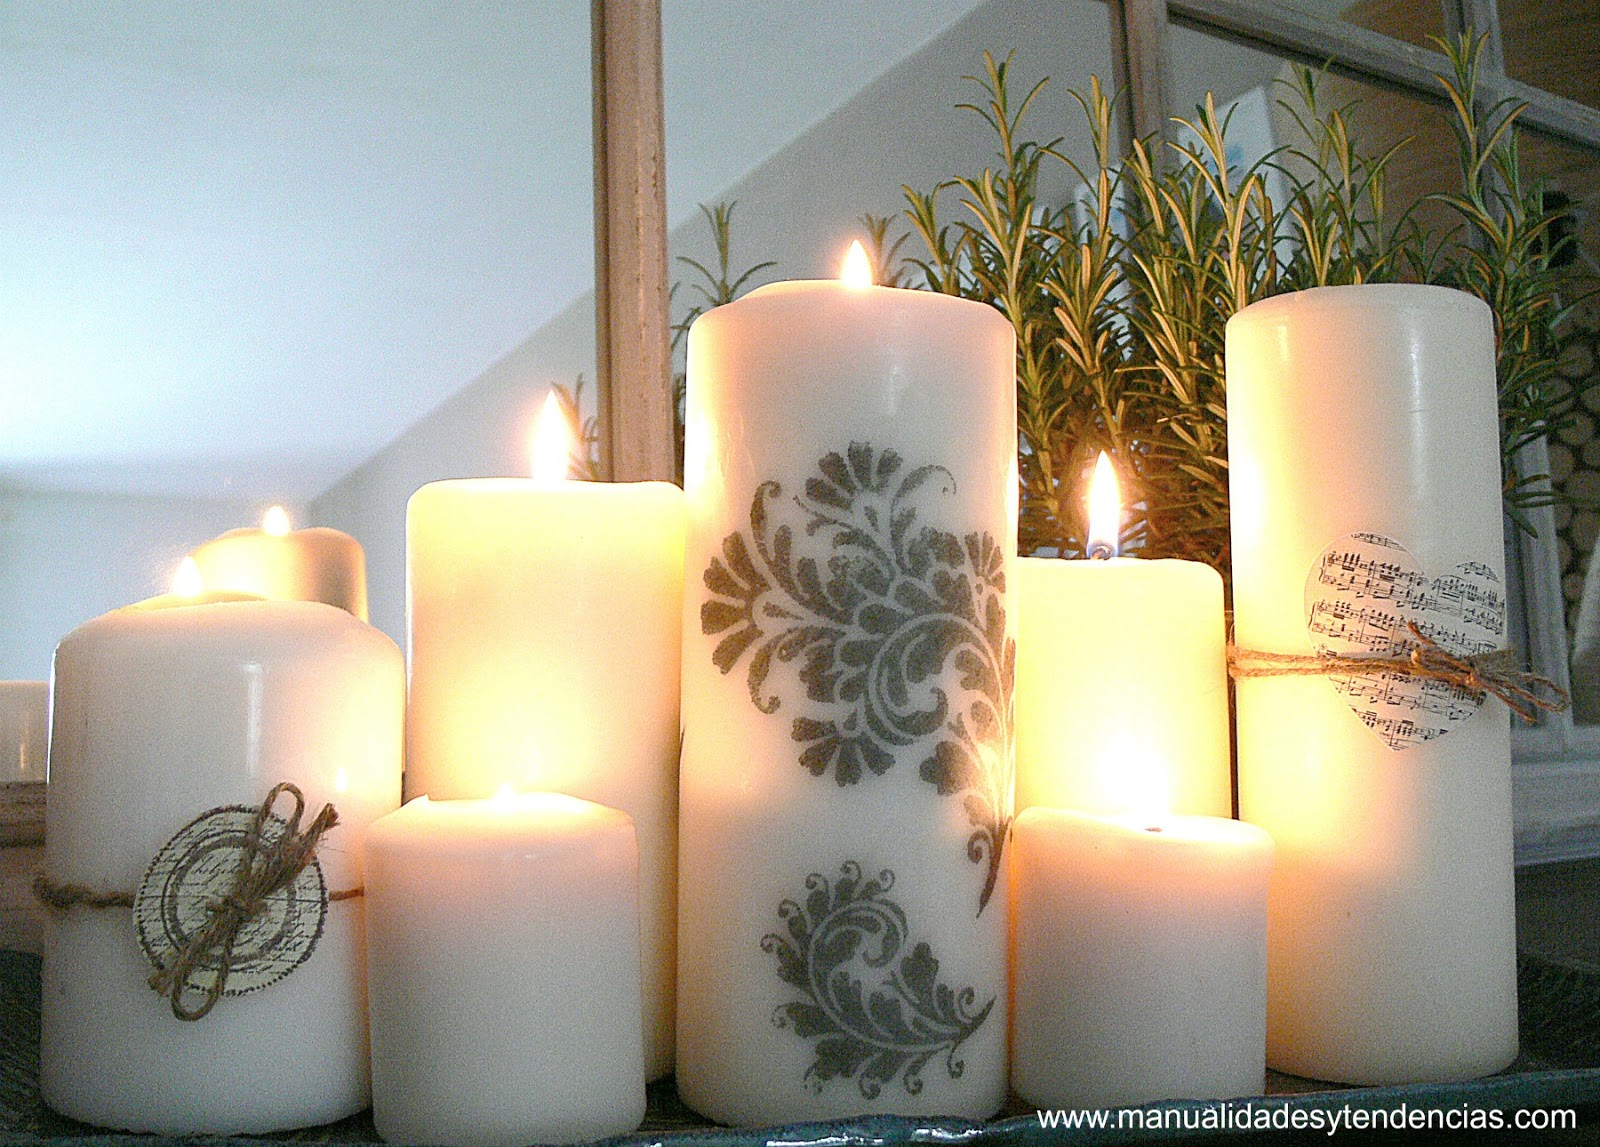 Manualidades y tendencias c mo decorar velas con sellos - Decoracion con velas ...